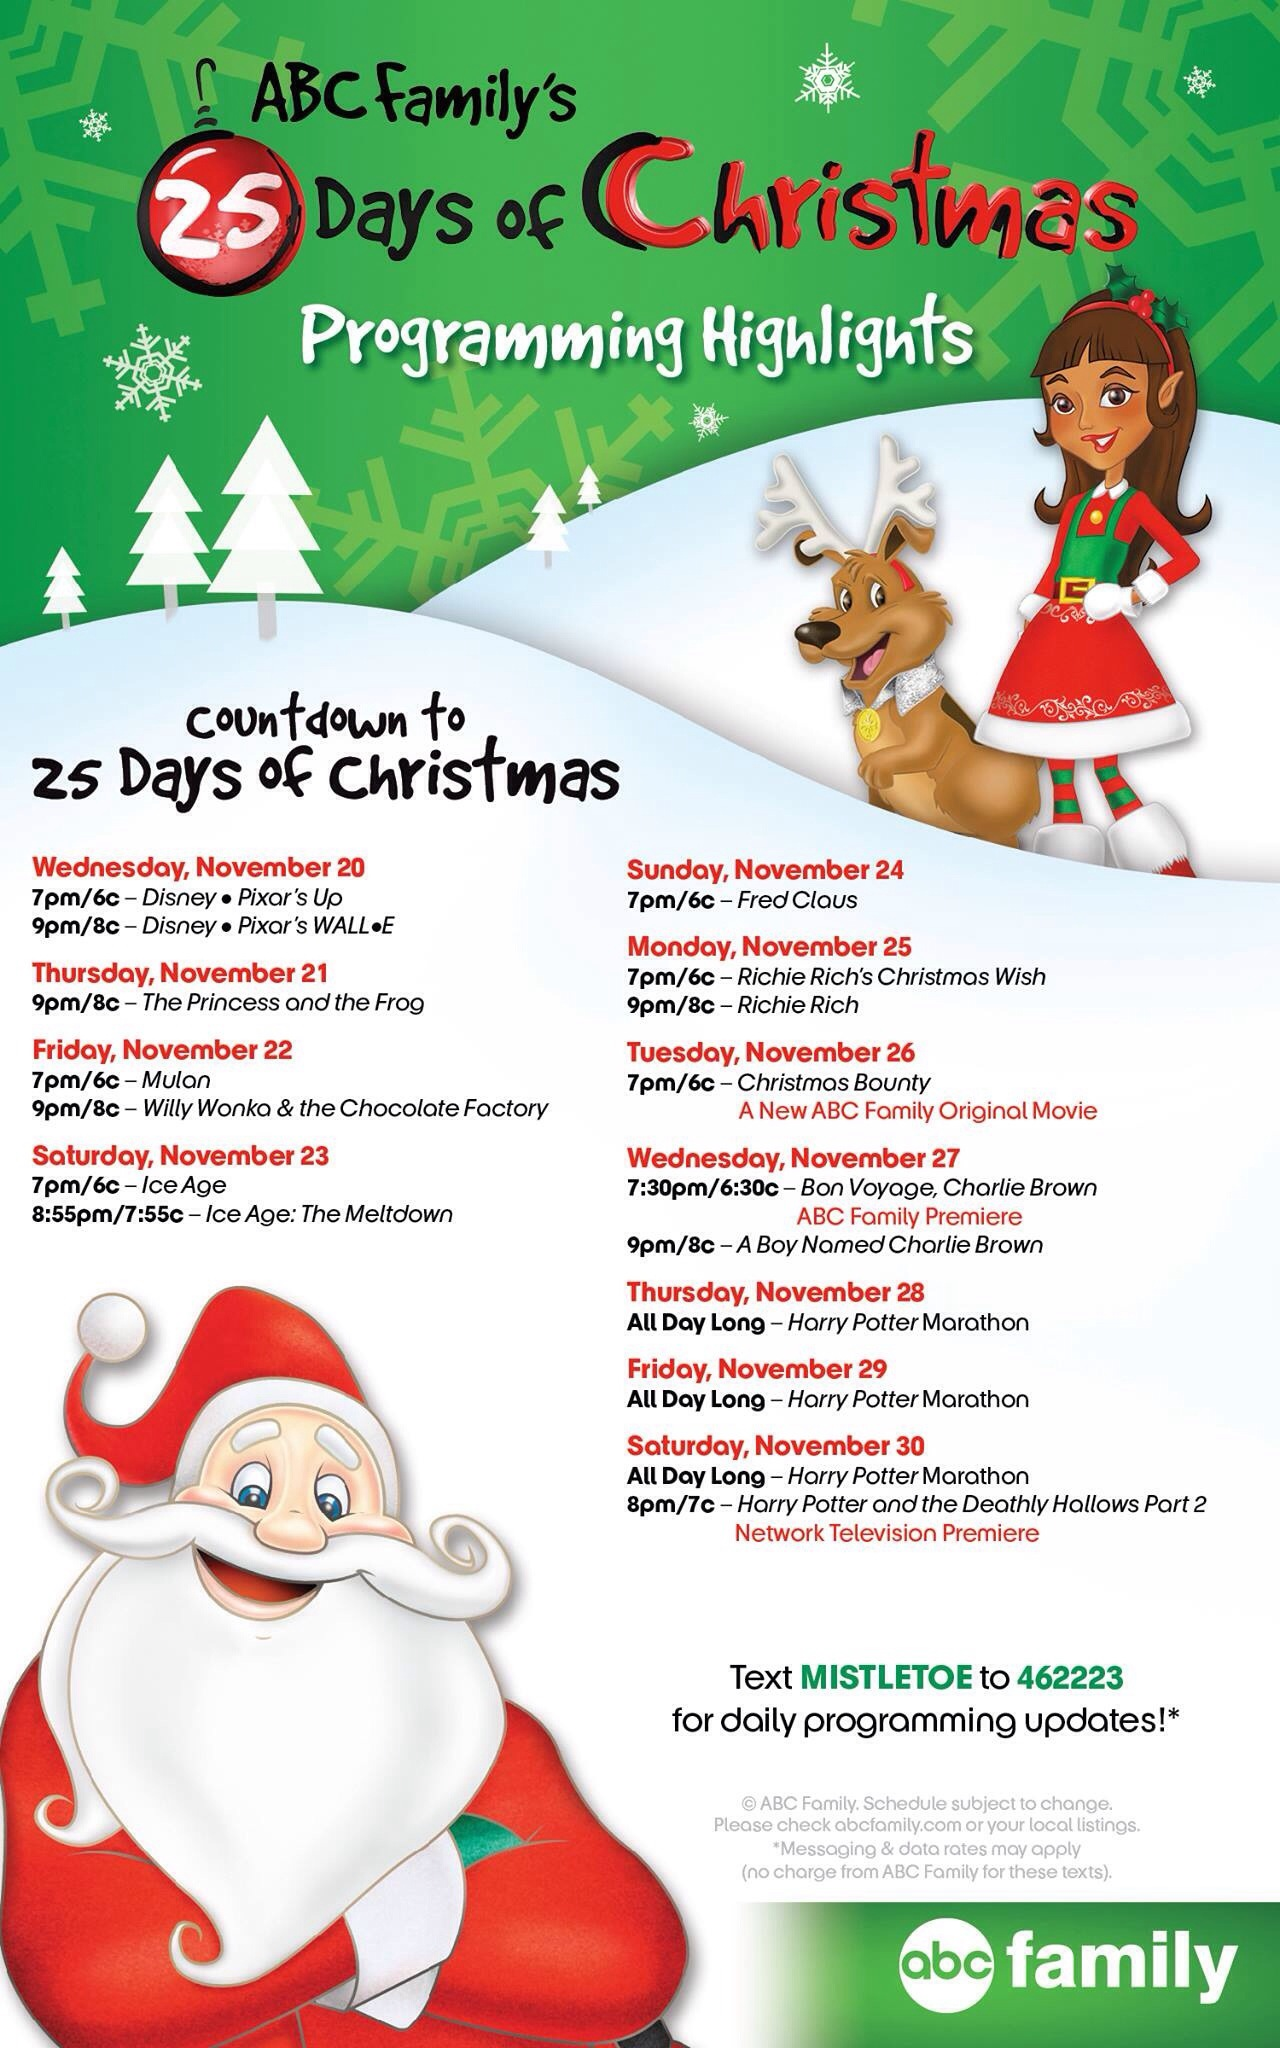 abc familys countdown to the 25 days of christmas 2013